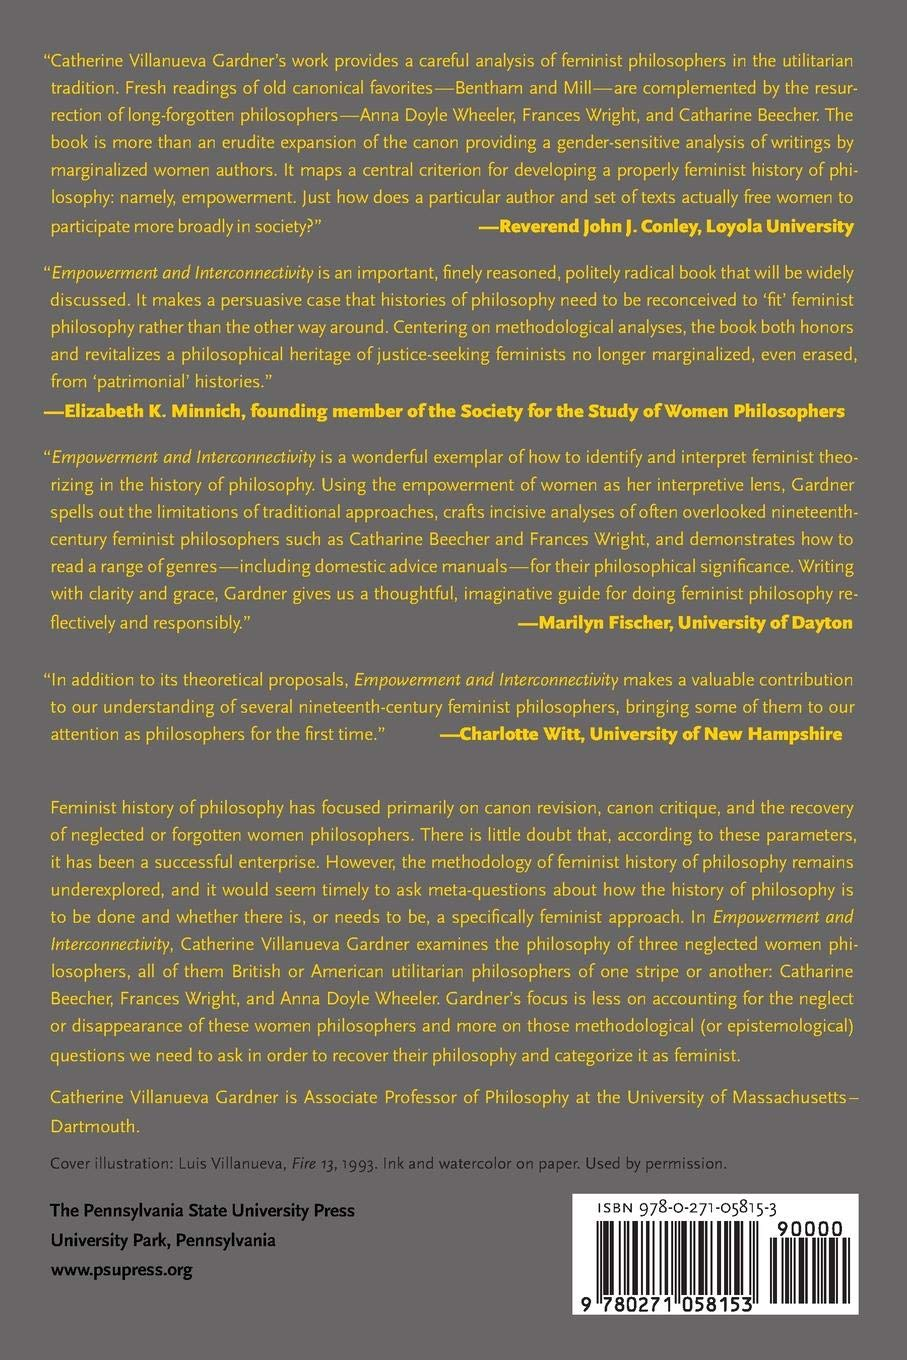 Empowerment and Interconnectivity: Toward a Feminist History of Utilitarian Philosophy